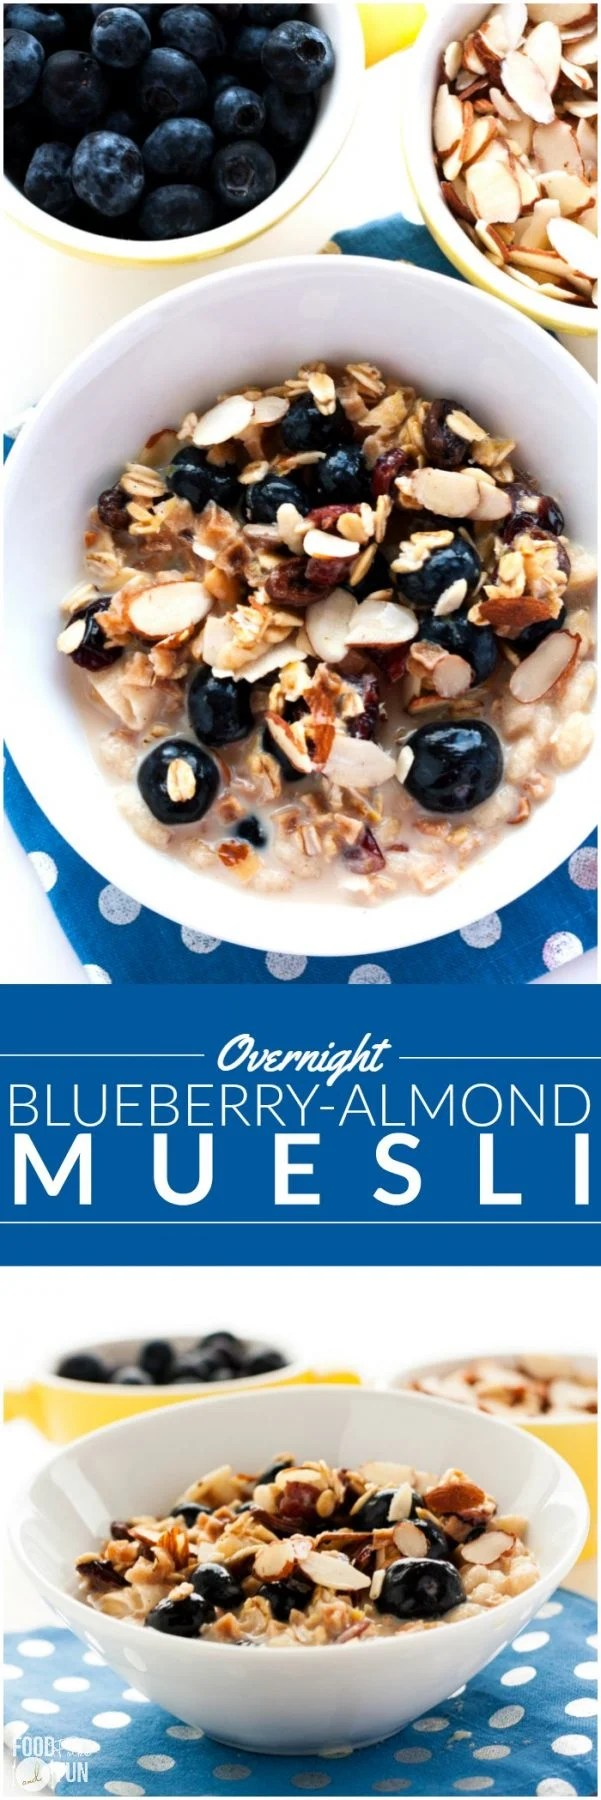 This Overnight Blueberry-Almond Muesli recipe is an easy grab-and-go breakfast for busy weekday mornings. via @foodfolksandfun